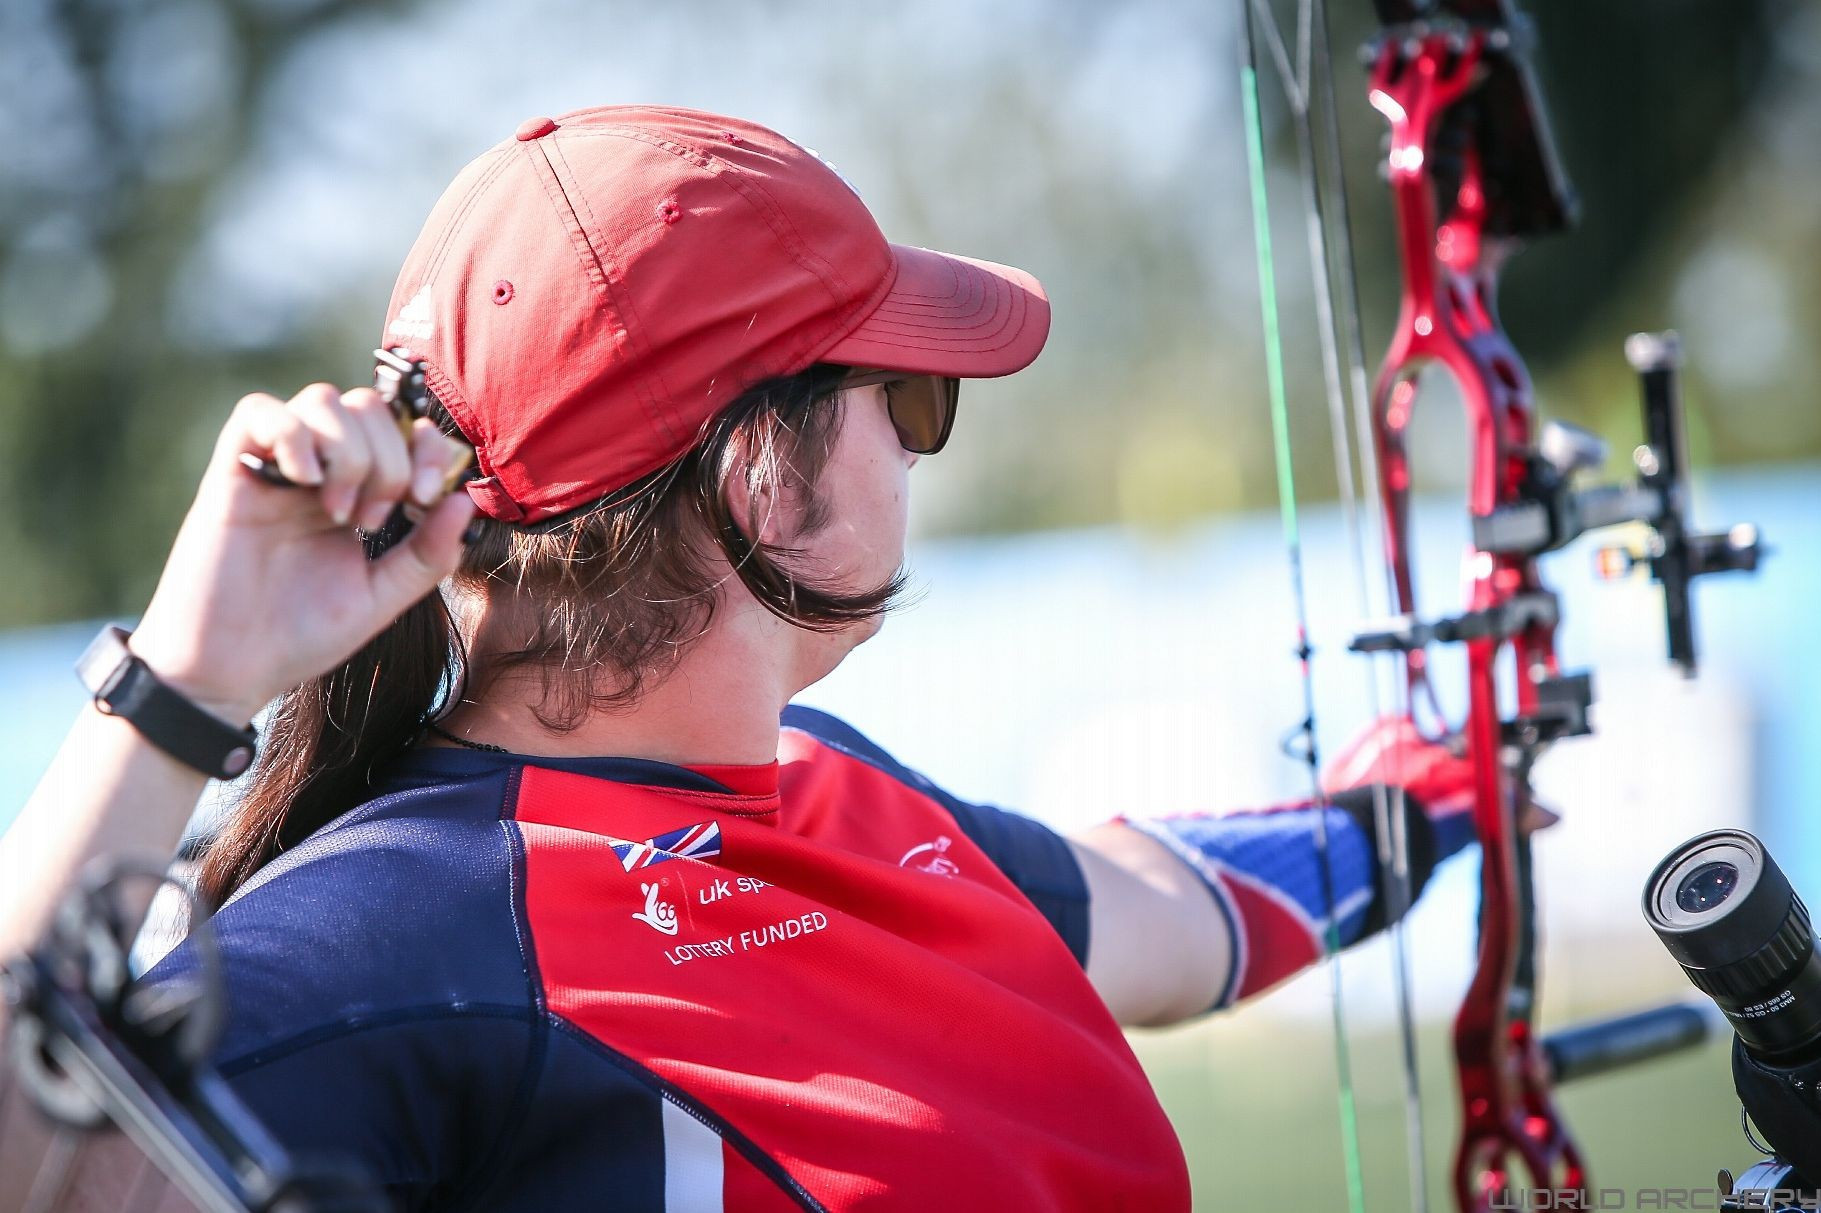 Rio 2016 champion Jessica Stretton scored 657 out of a possible 720 points today ©World Archery